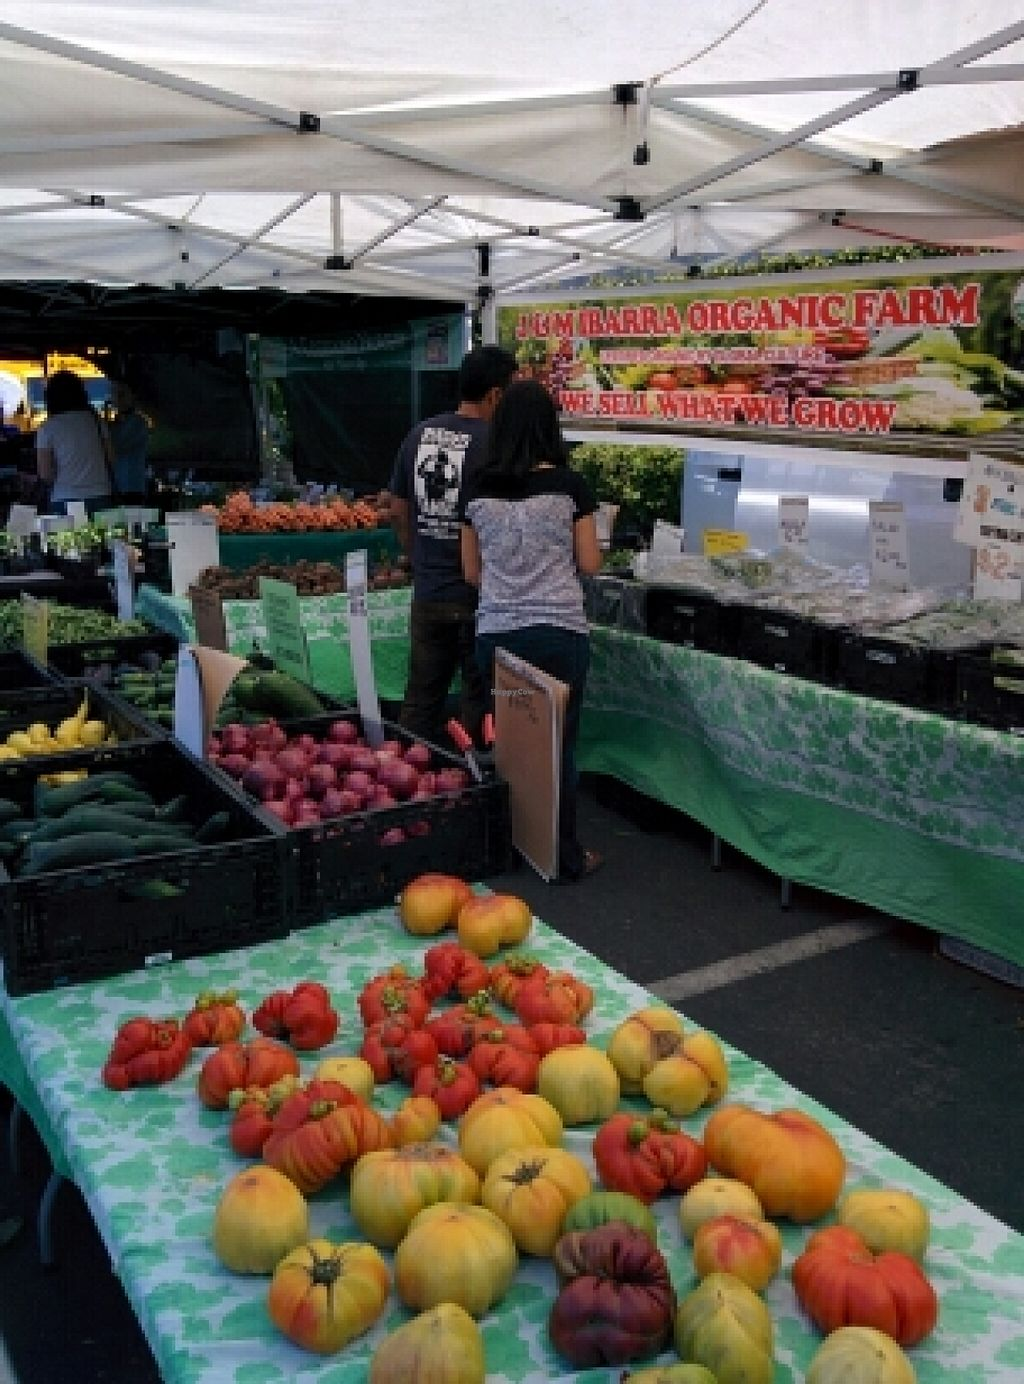 """Photo of Belmont Farmers' Market  by <a href=""""/members/profile/alexandra_vegan"""">alexandra_vegan</a> <br/>organic produce, One of the few in this market <br/> June 15, 2016  - <a href='/contact/abuse/image/31963/153950'>Report</a>"""